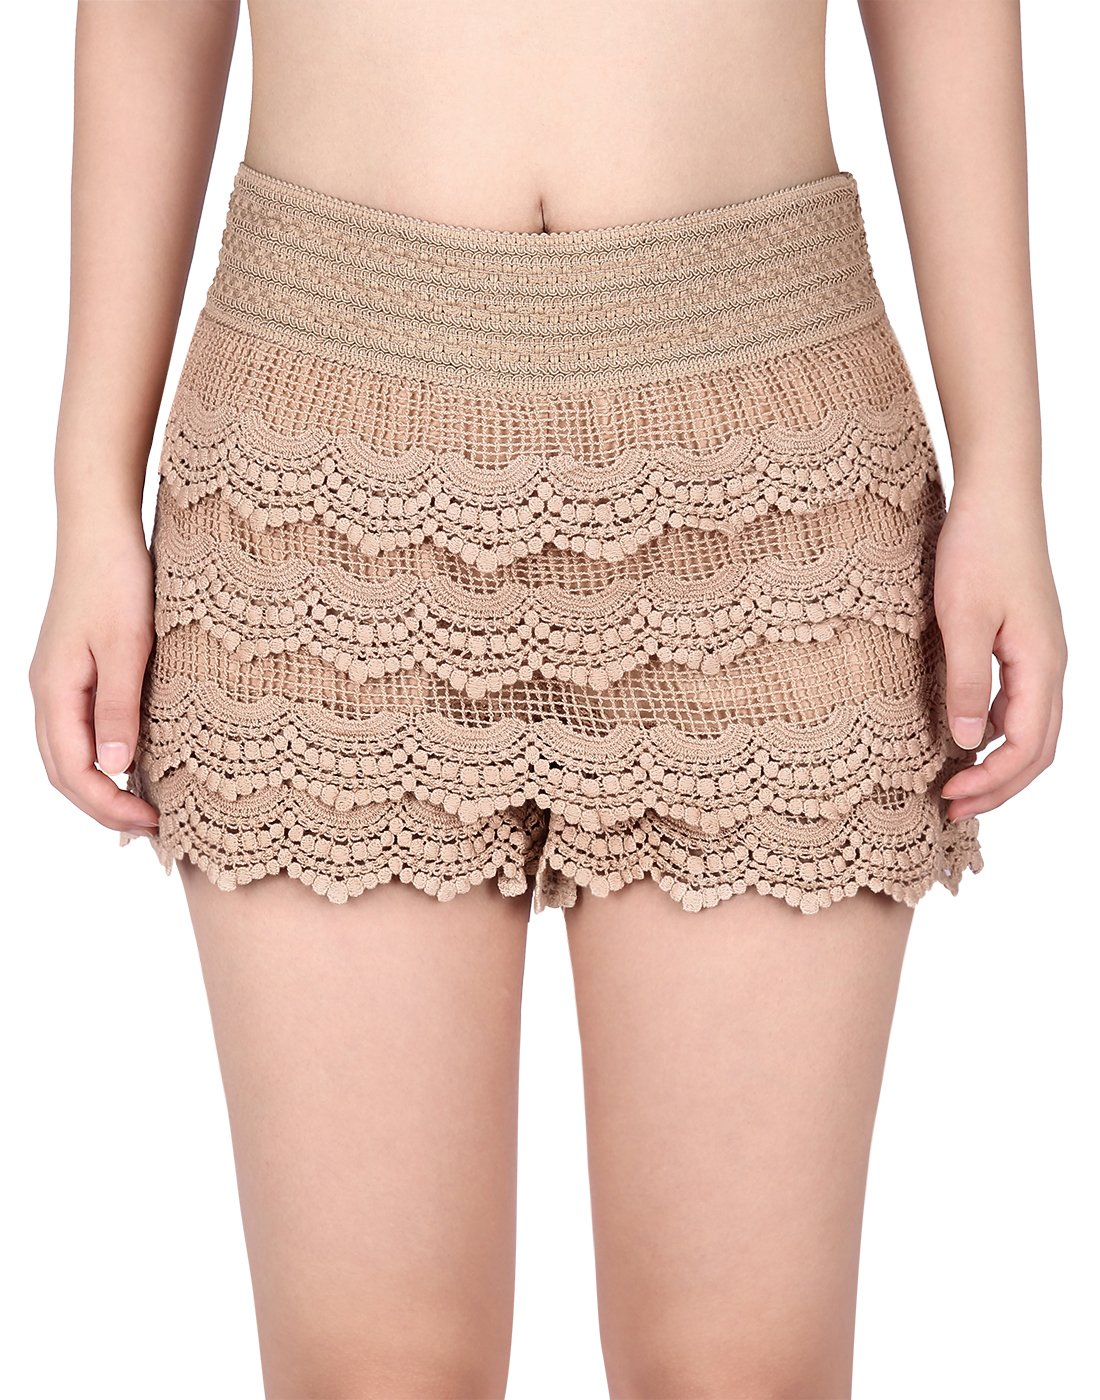 HDE Women's Lace Shorts Fitted Scallop Hem Crochet Mini Hot Pants - Taupe, Small (US 2/4)